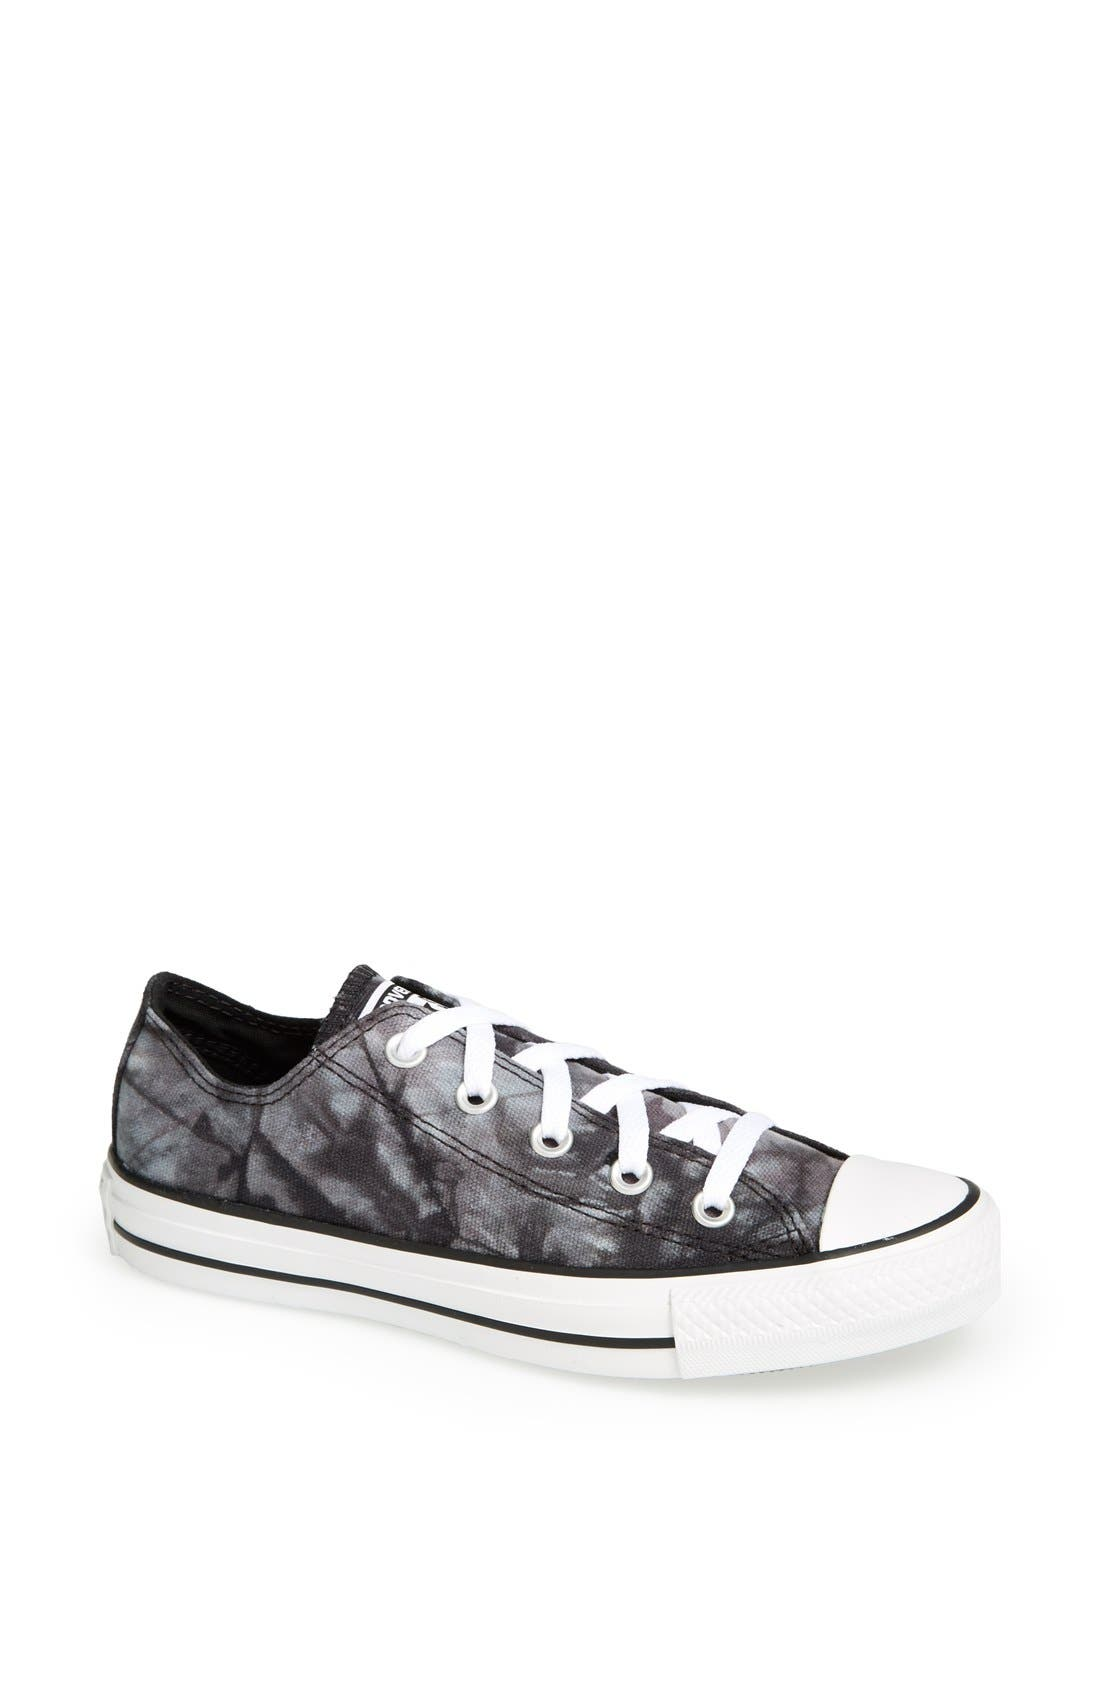 Alternate Image 1 Selected - Converse Chuck Taylor® All Star® 'Ox' Tie Dye Low Top Sneaker (Women)